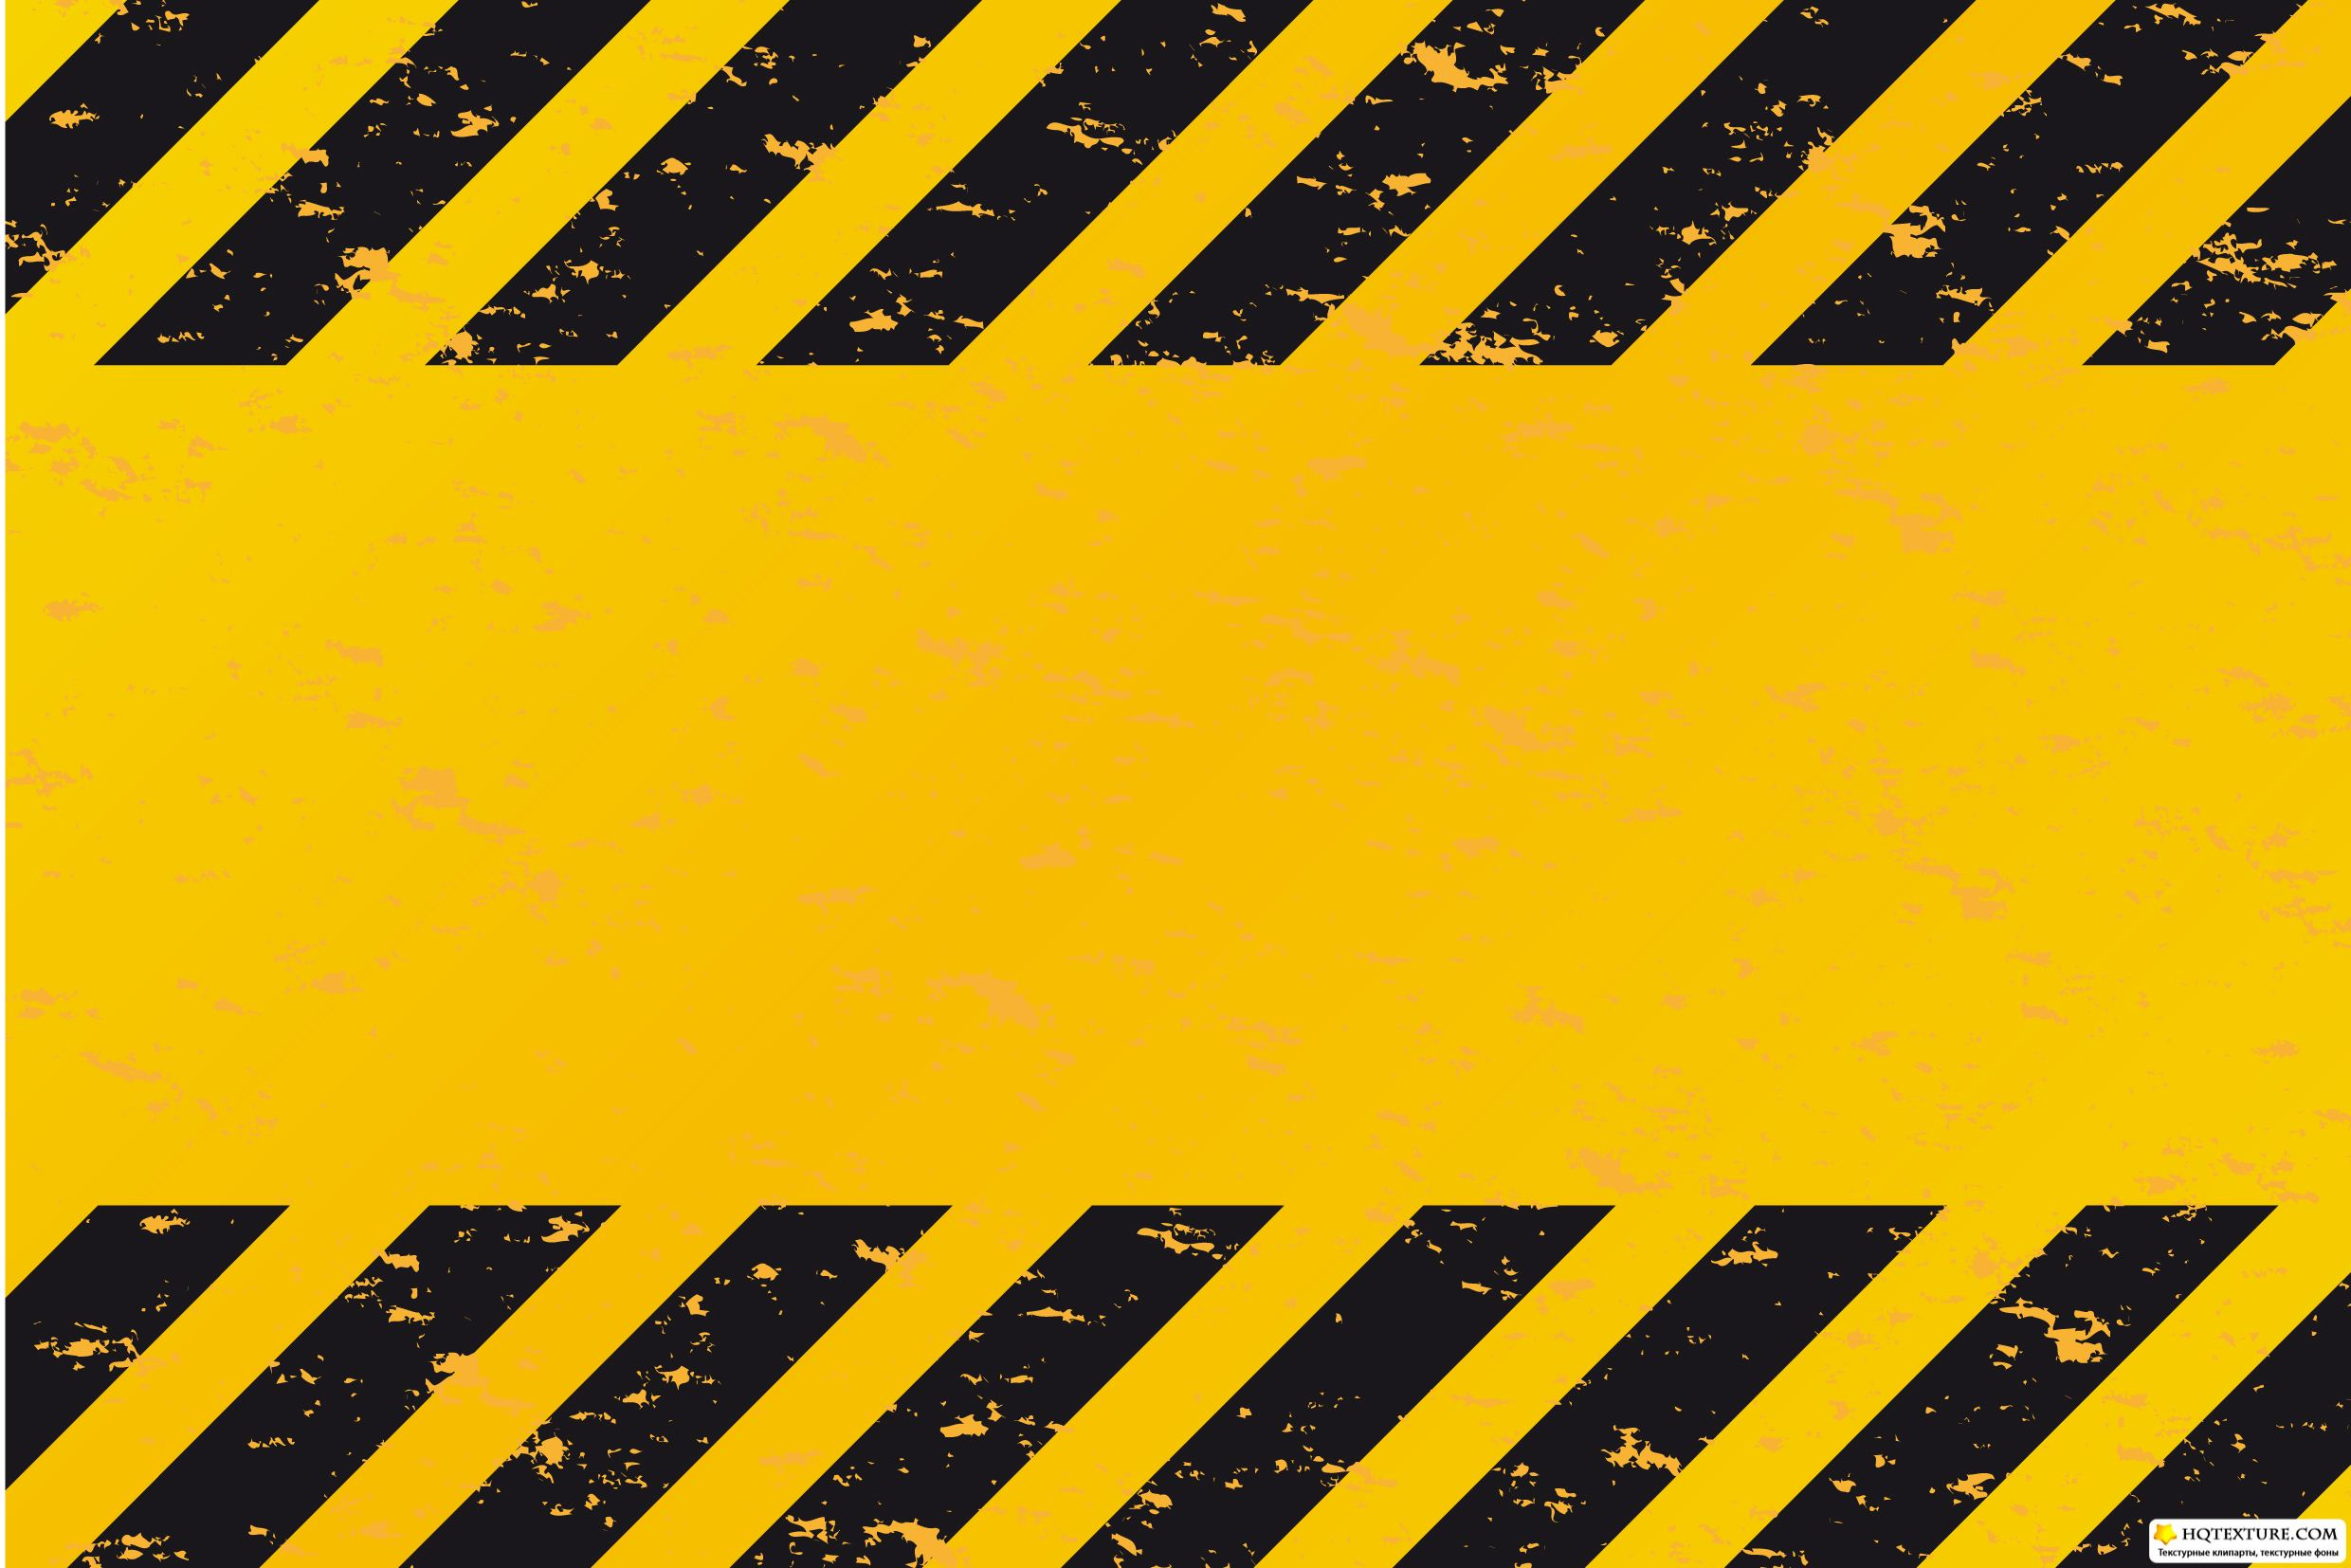 Caution Sign Wallpaper - WallpaperSafari